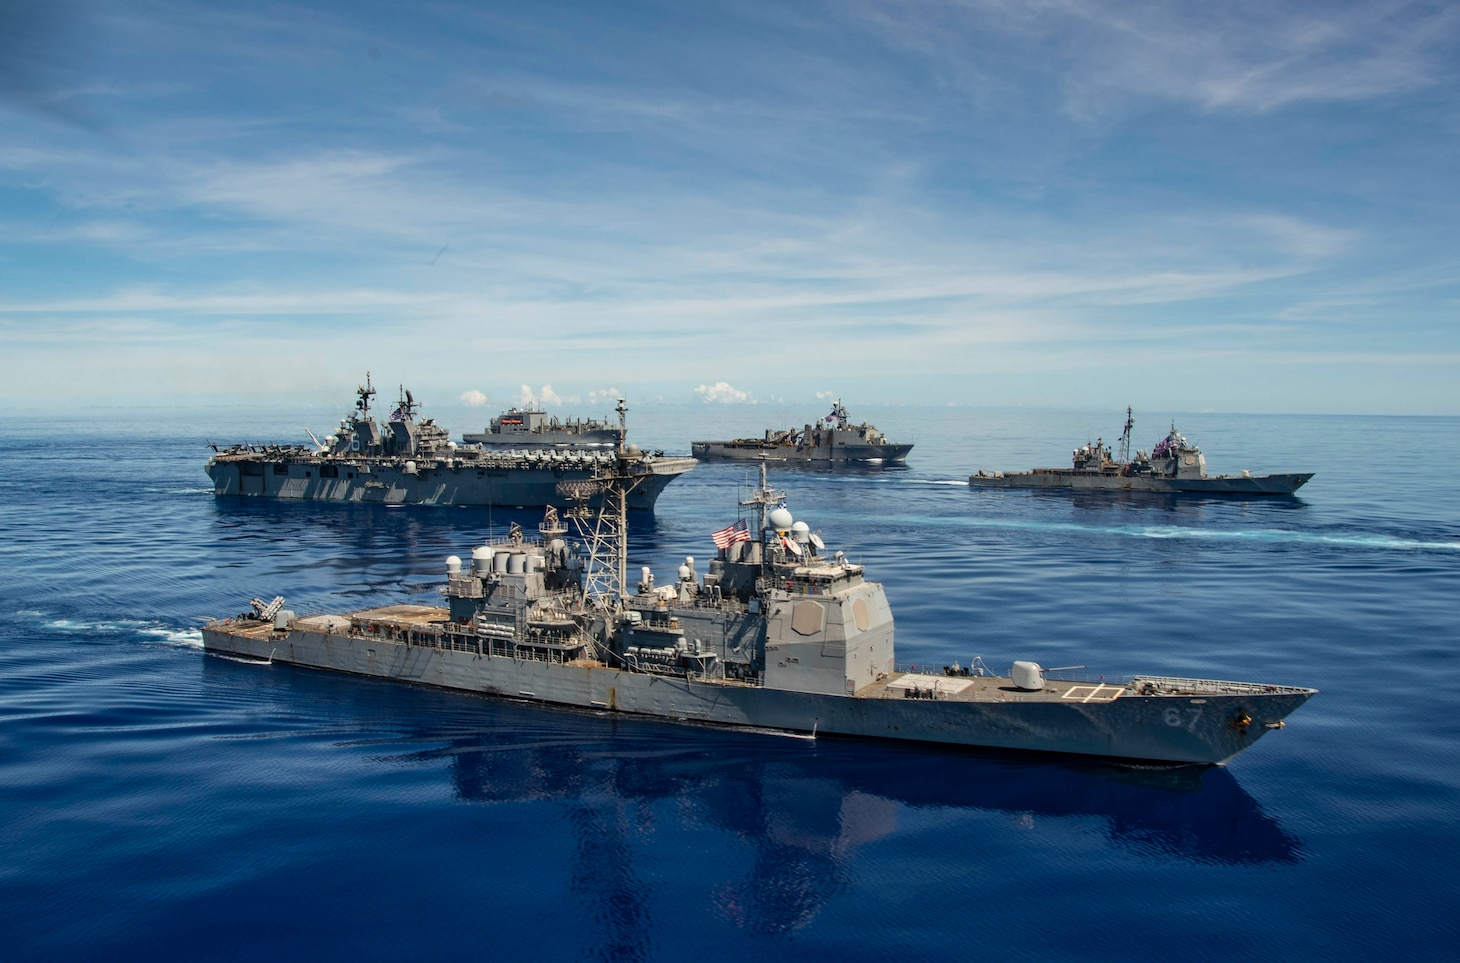 PHILIPPINE SEA (Sept. 25, 2020) USS Shiloh (CG 67), front, USS America (LHA 6), USS Antietam (CG 54), USS Germantown (LSD 42) and USNS Sacagawea (T-AKE 2), steam in formation with the Navy's only forward-deployed aircraft carrier USS Ronald Reagan (CVN 76), in support of Valiant Shield 2020. Valiant Shield is a U.S. only, biennial field training exercise (FTX) with a focus on integration of joint training in a blue-water environment among U.S. forces. This training enables real-world proficiency in sustaining joint forces through detecting, locating, tracking and engaging units at sea, in the air, on land and in cyberspace in response to a range of mission areas. (U.S. Navy video by Mass Communication Specialist 2nd Class Erica Bechard)